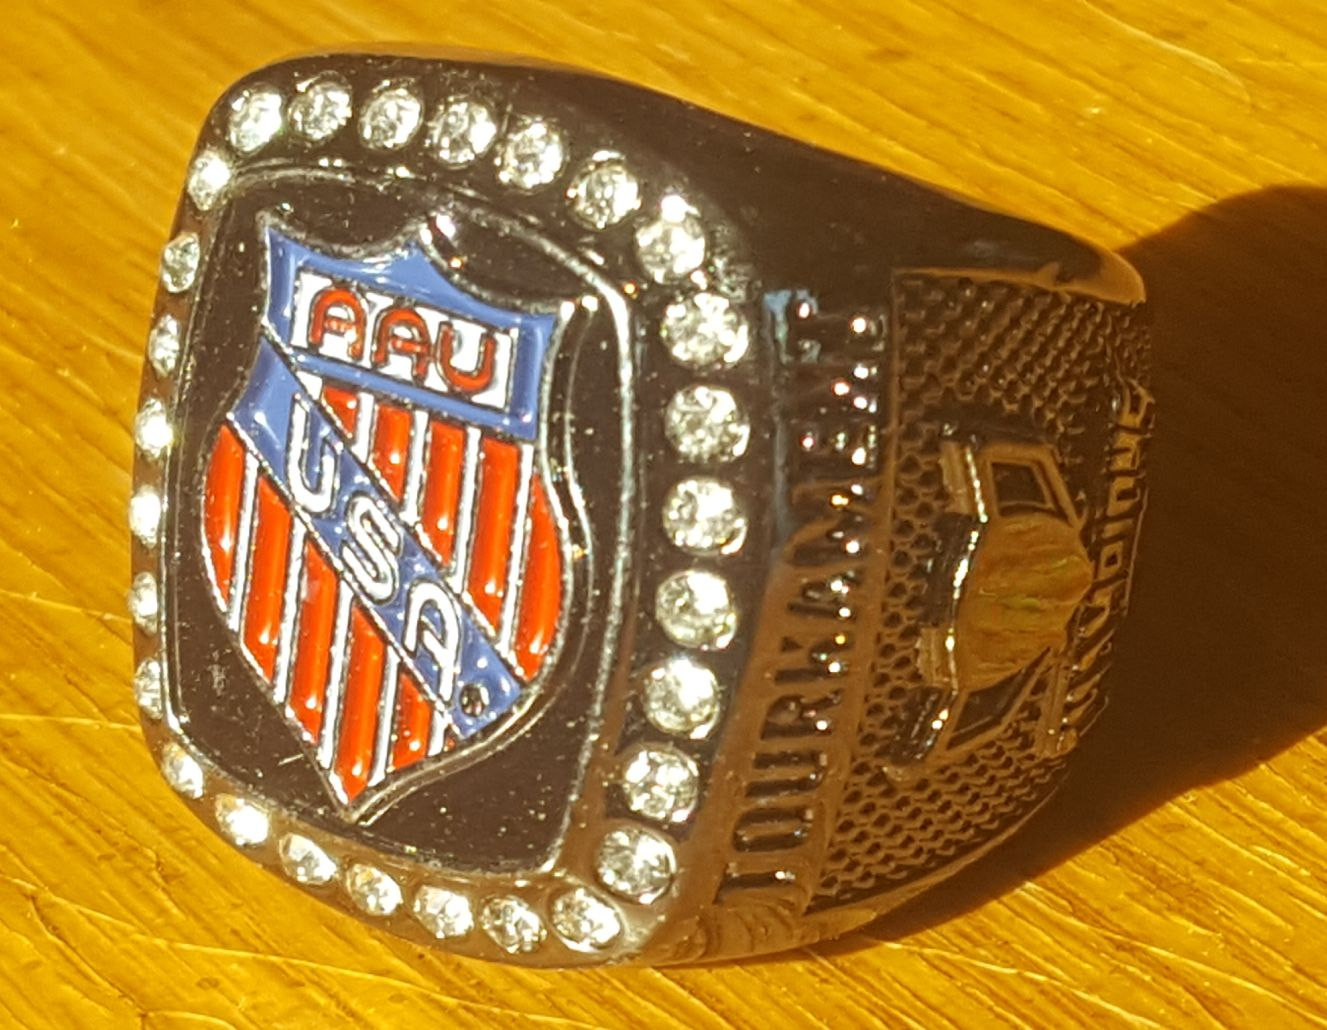 In the Southern Pacific region of AAU basketball, we play for these rings.